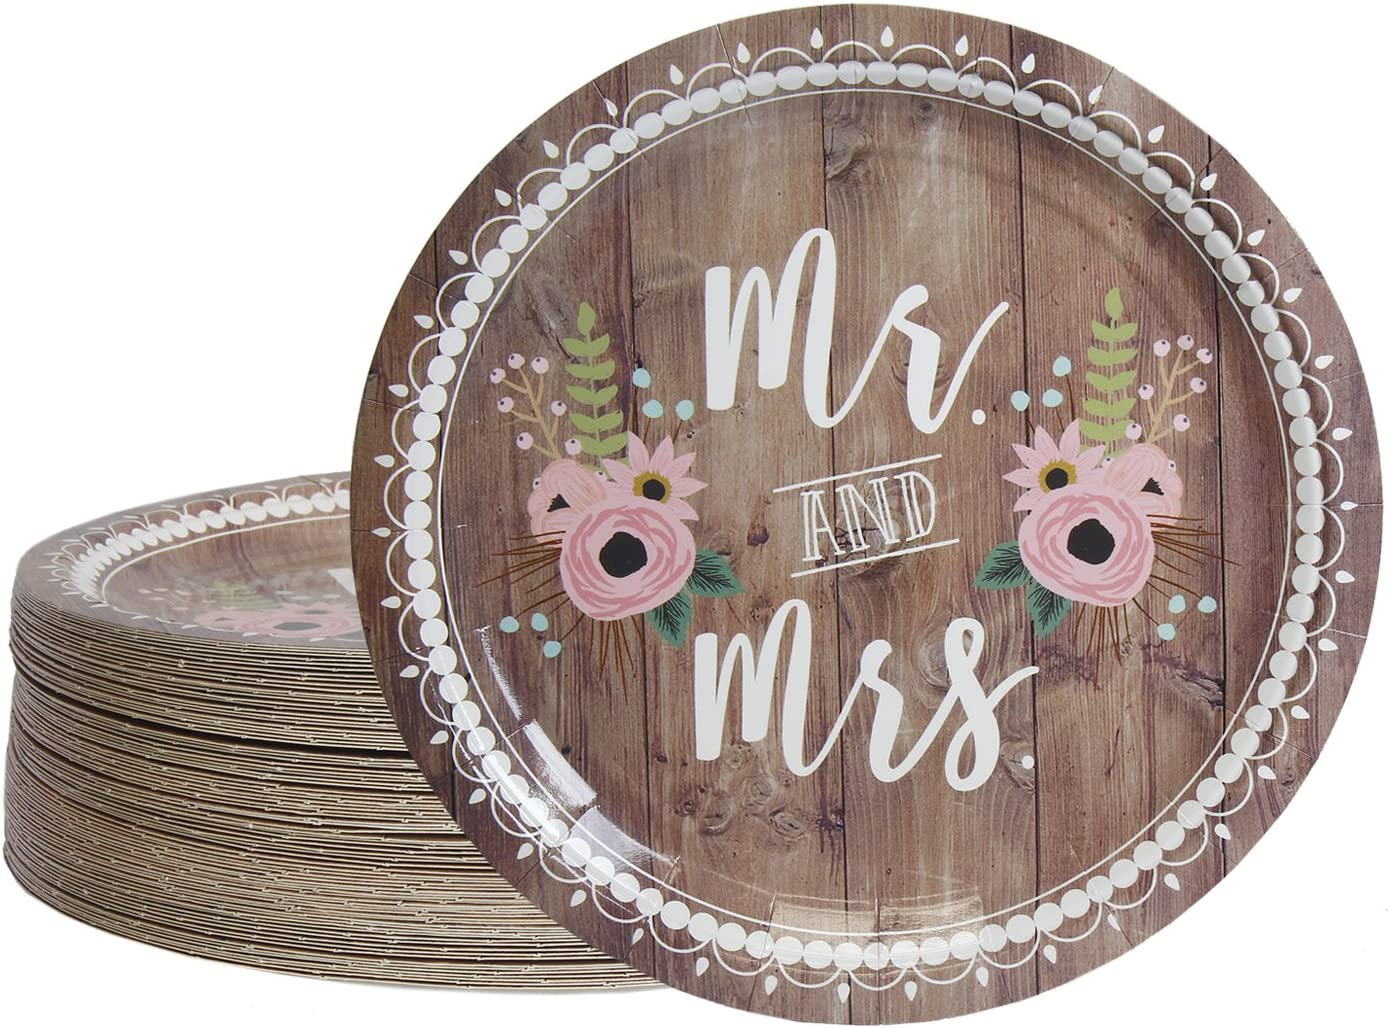 Disposable Plates - 80-Count Paper Plates, Wedding Party Supplies for Appetizer, Lunch, Dinner, and Dessert, Mr. and Mrs. Rustic Wedding Theme Design, 9 Inches in Diameter